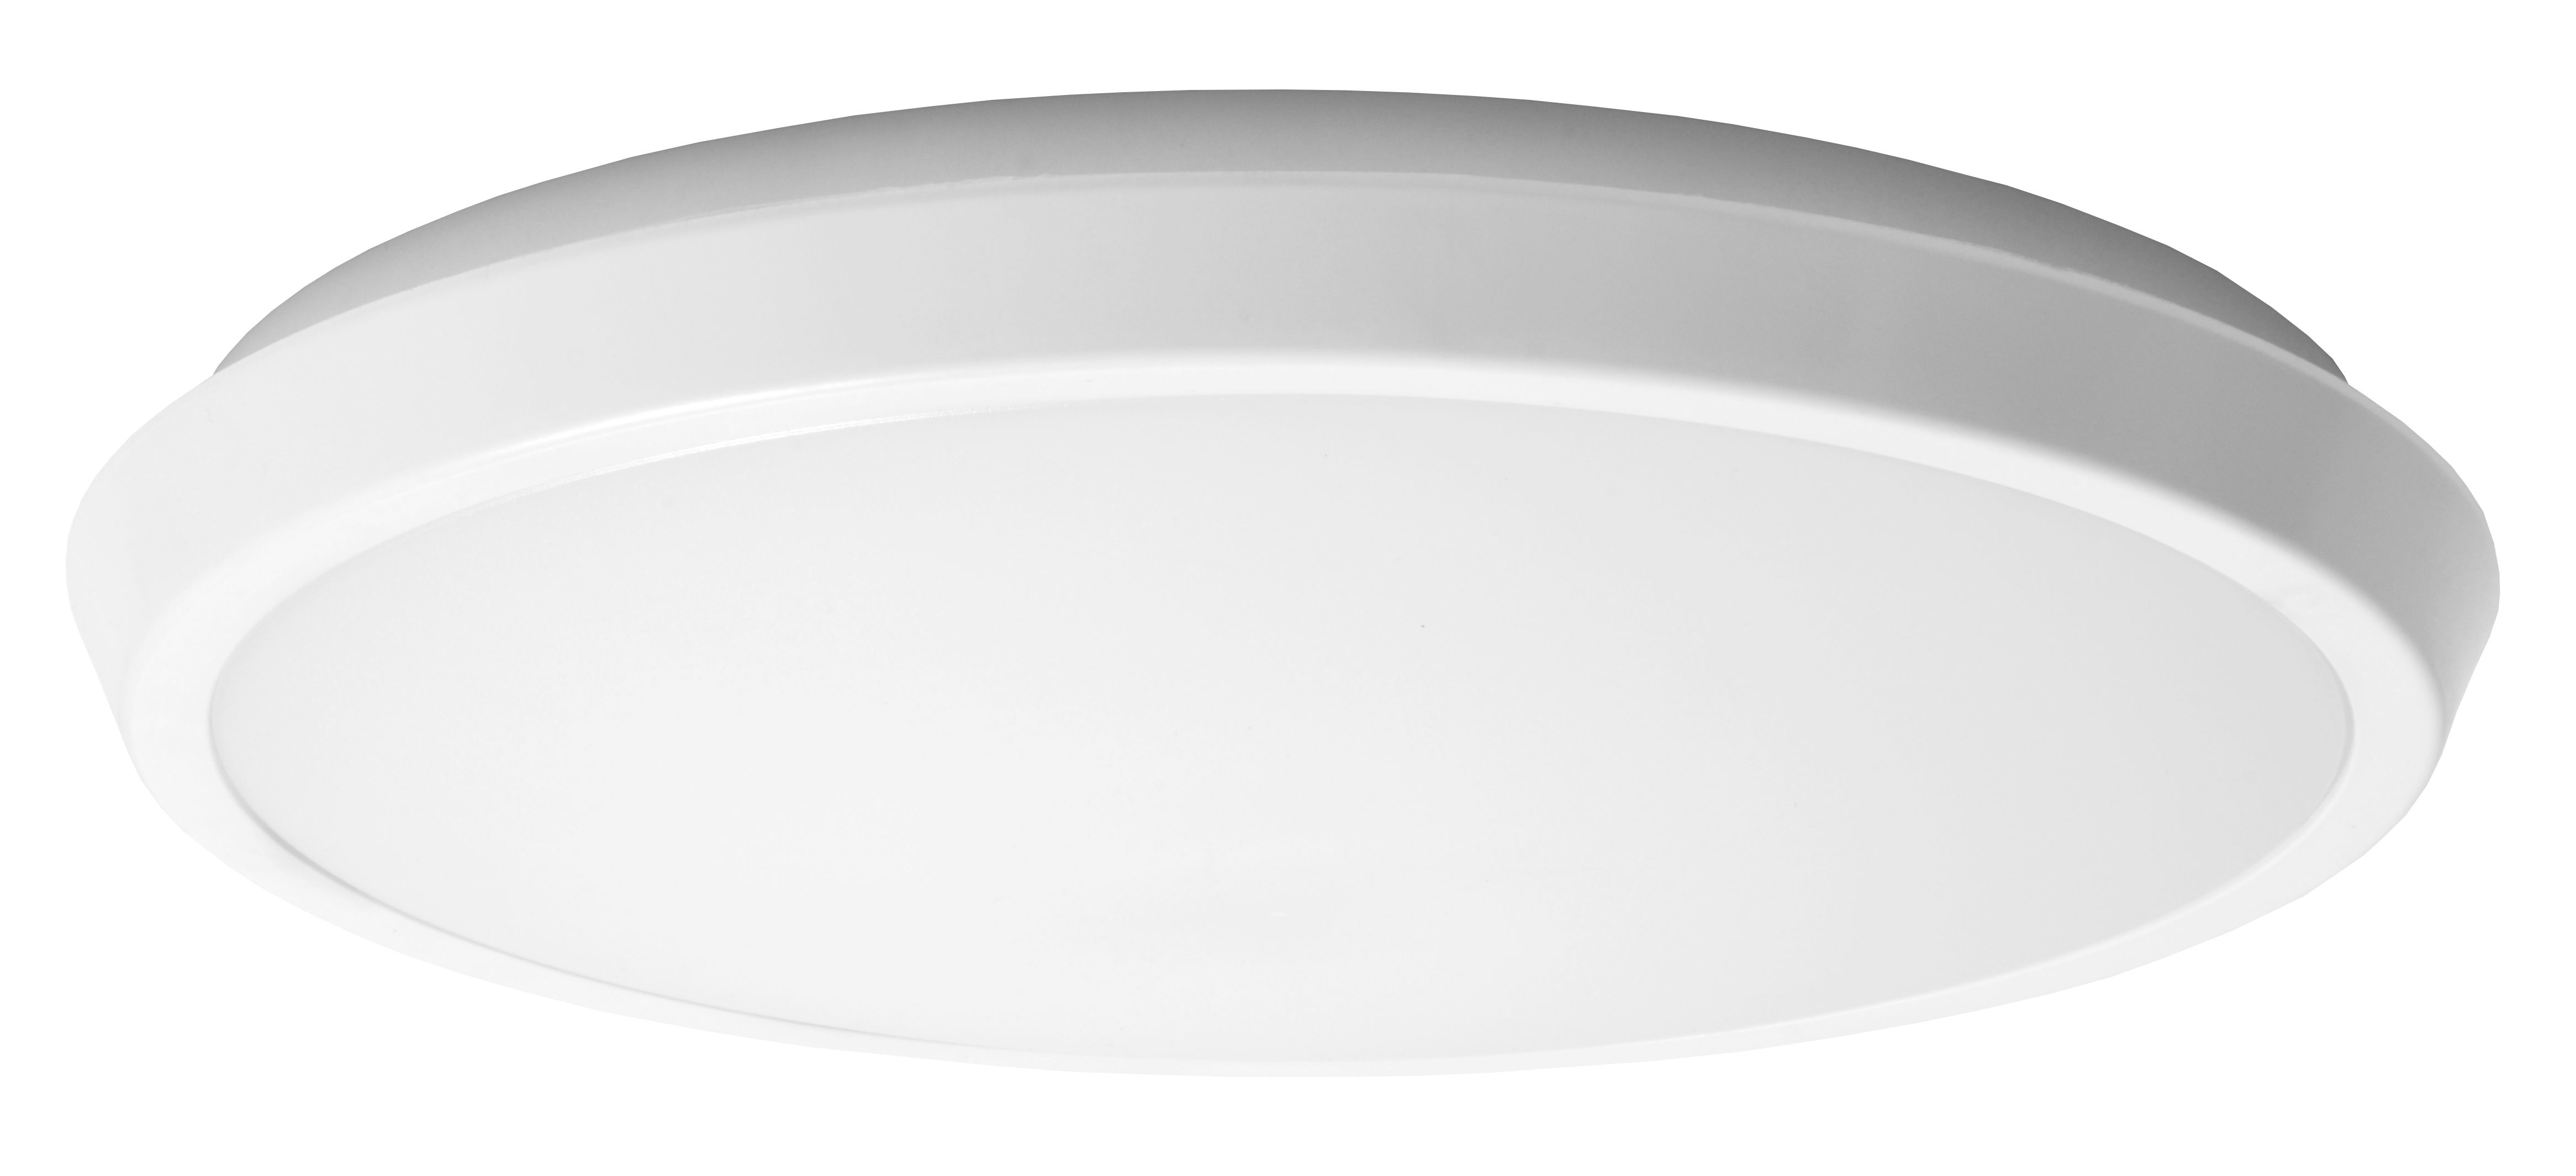 Ge 24 Led Light Fixtures